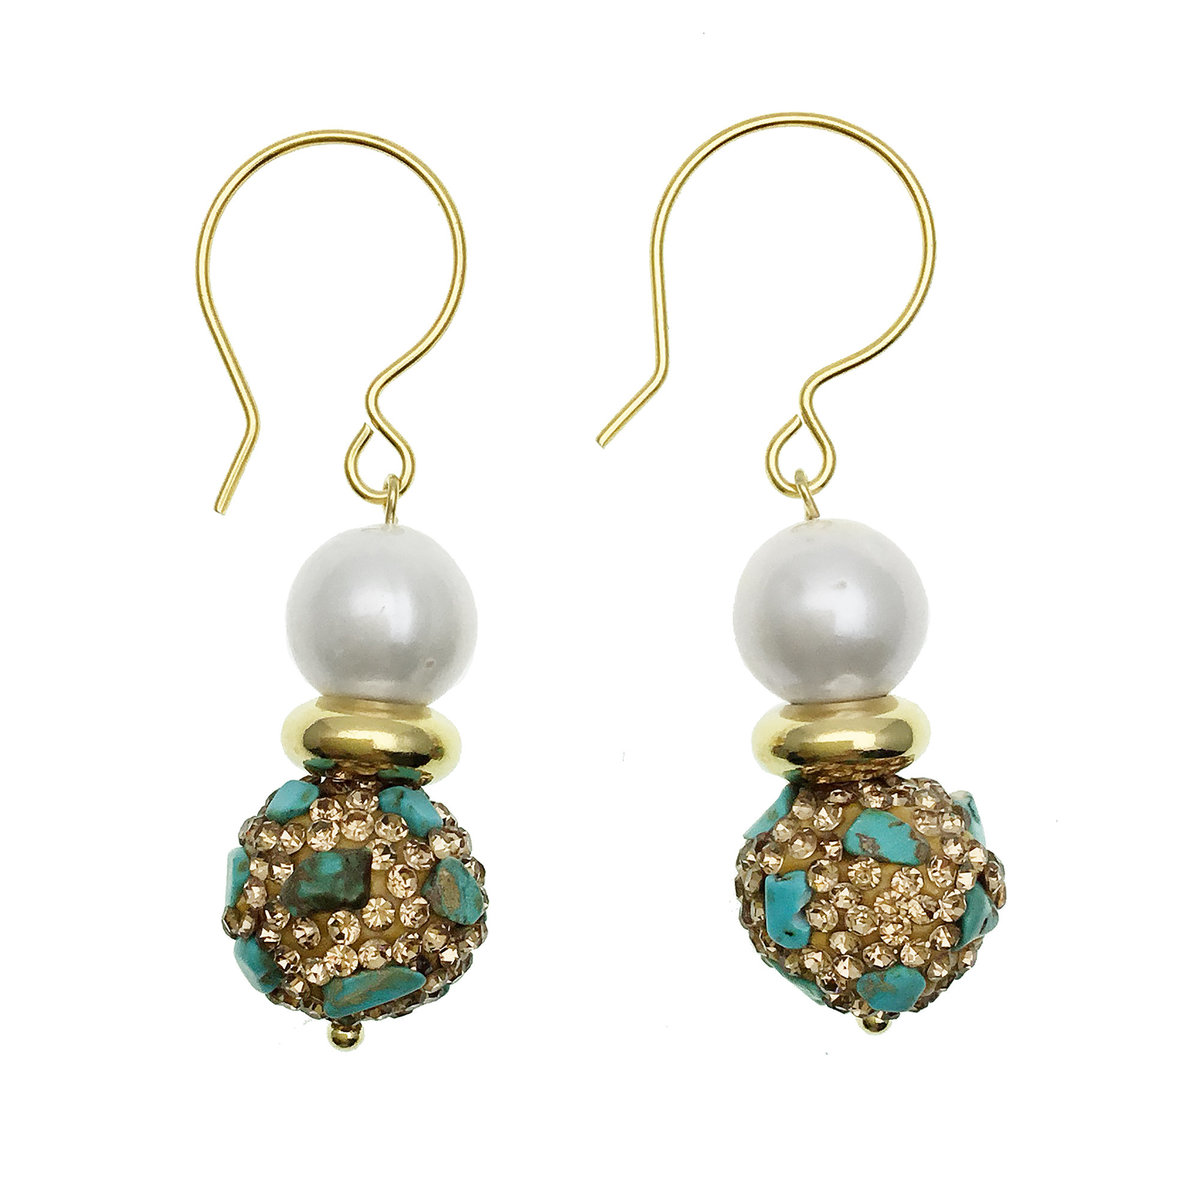 Freshwater Pearl With Rhinestone Bordered Turquoise Hook Earrings